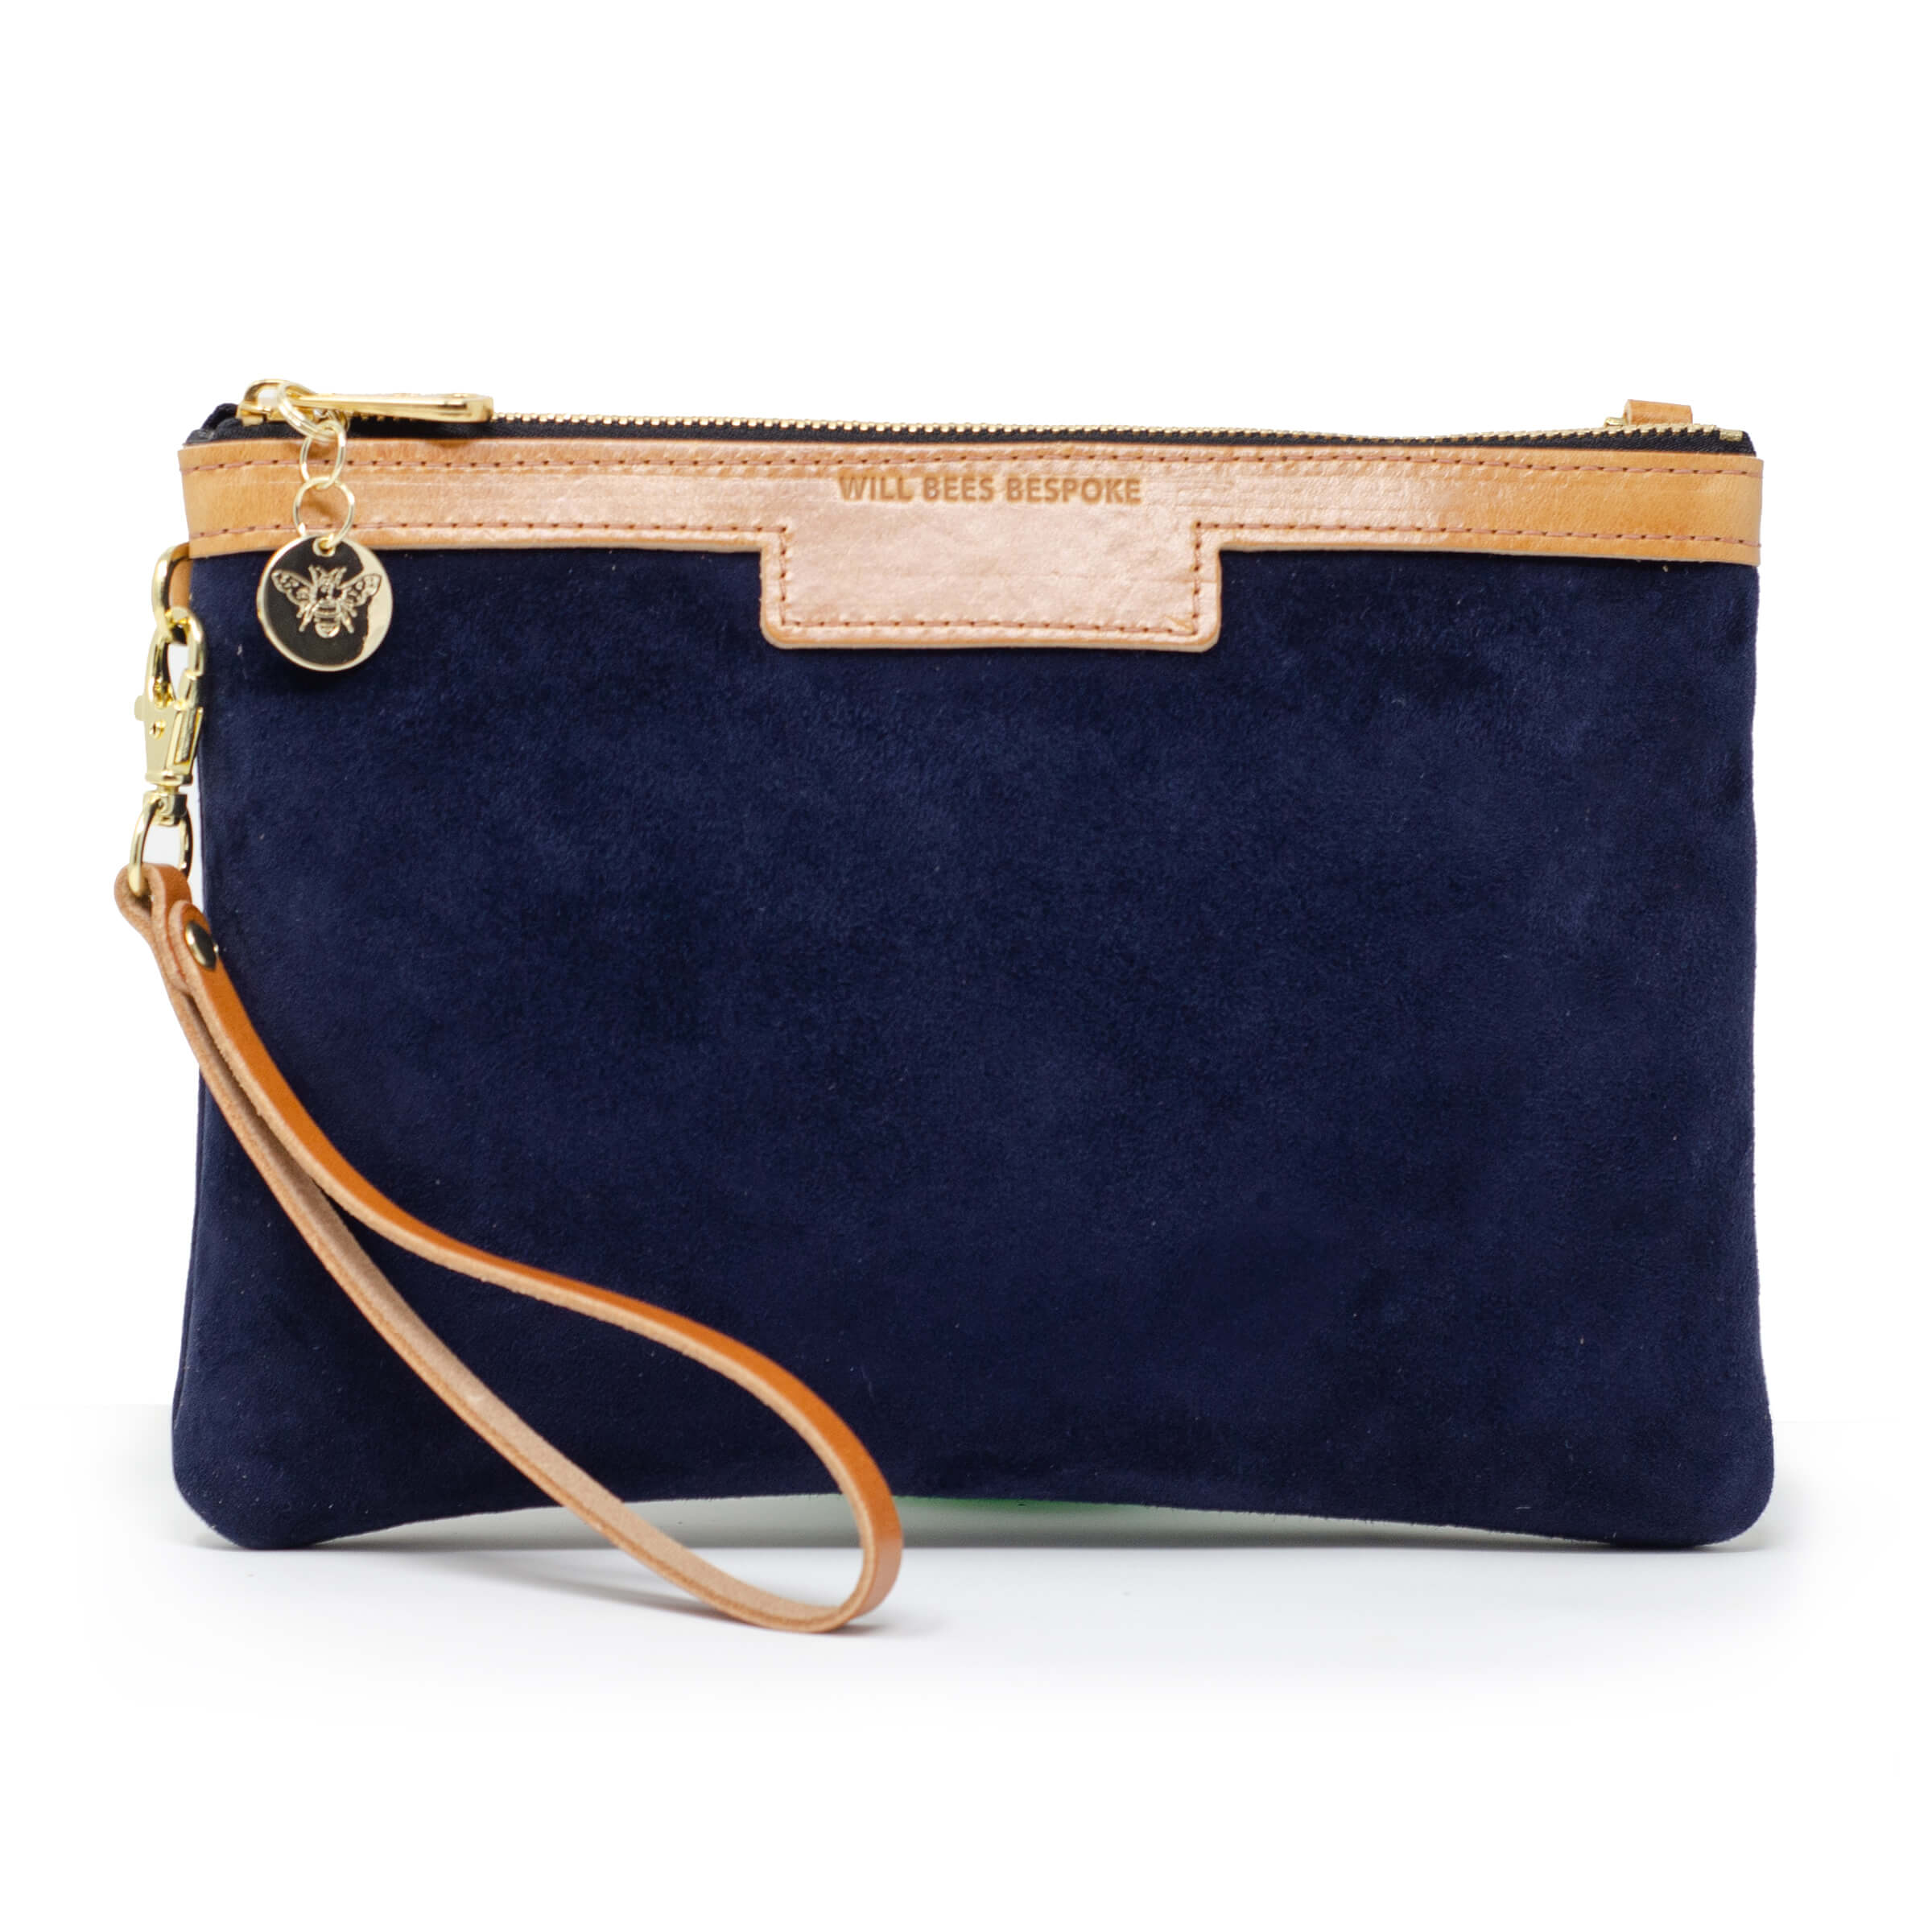 Premium Diana Clutch - Navy Suede - Will Bees Bespoke